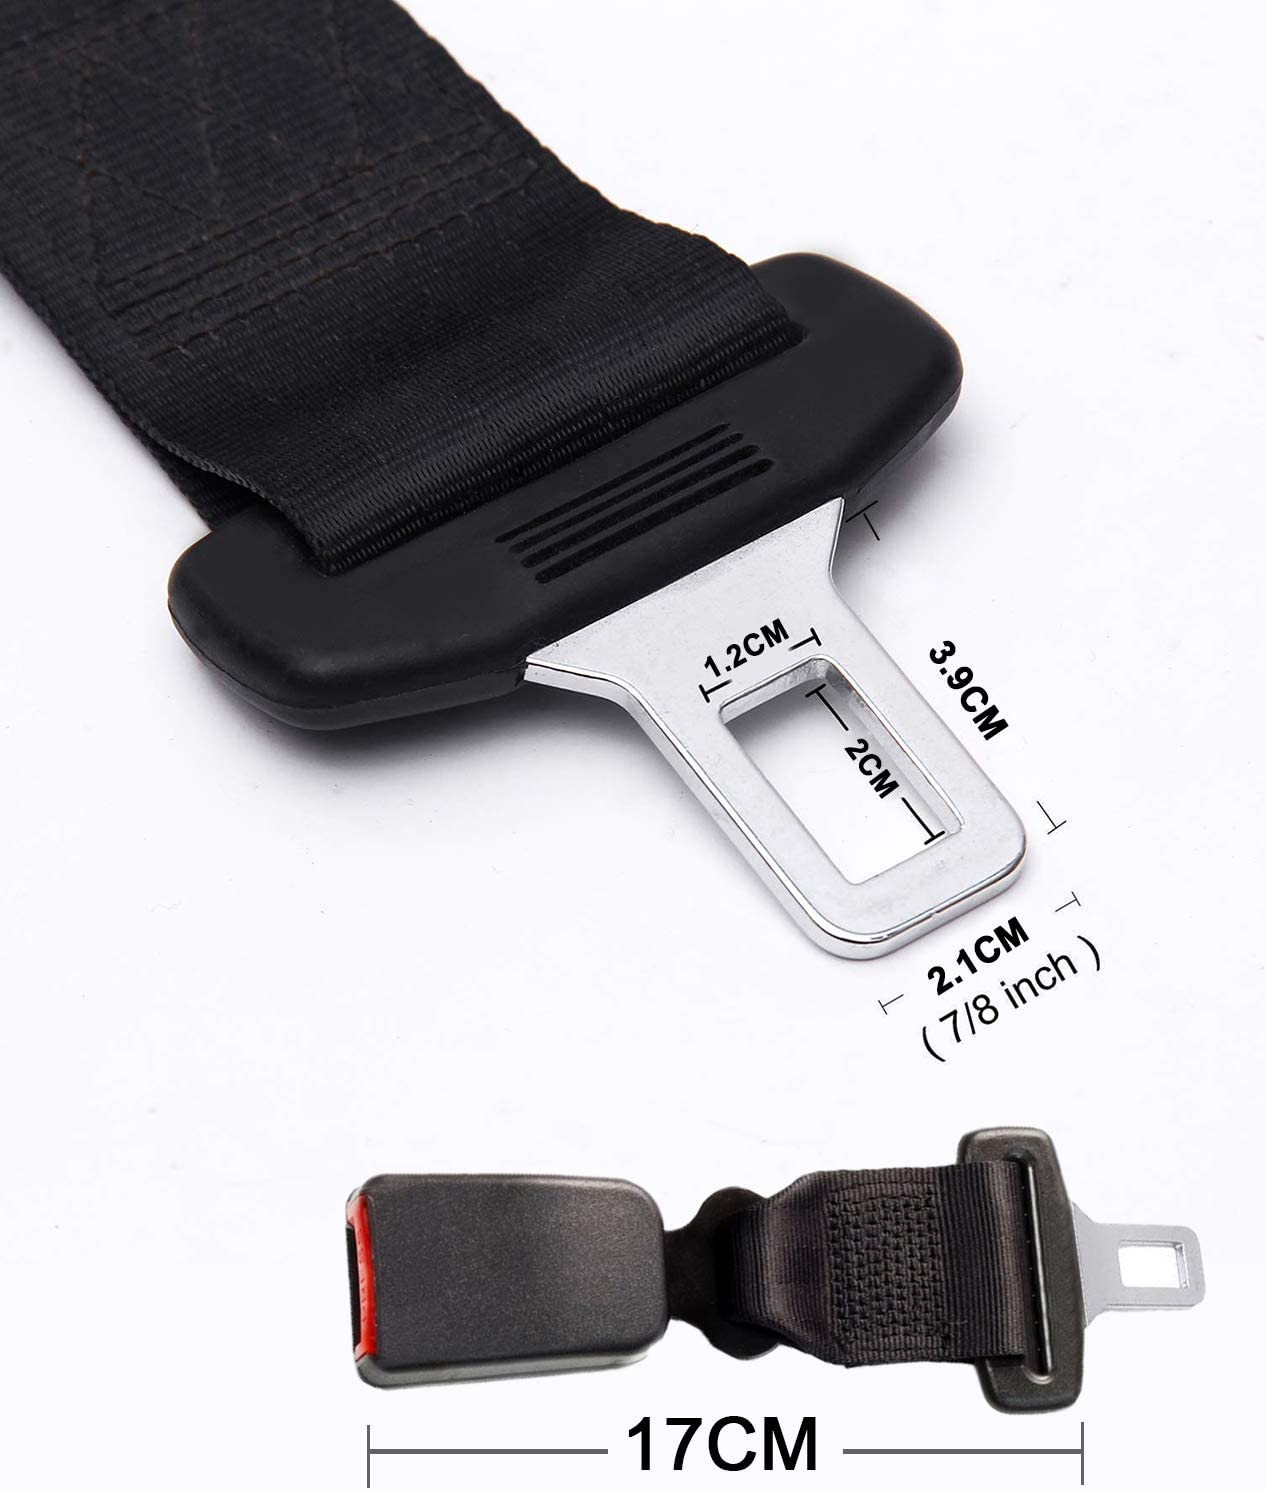 7//8 Metal Tongue 8 Suitable for Most Cars Comfortable Seatbelt Buckle Car Seatbelt Extenders Seat Belt Extension for Obese Men Pregnant Women Child Safety Seats Seat Belt Extender 2 Pack SANGYM